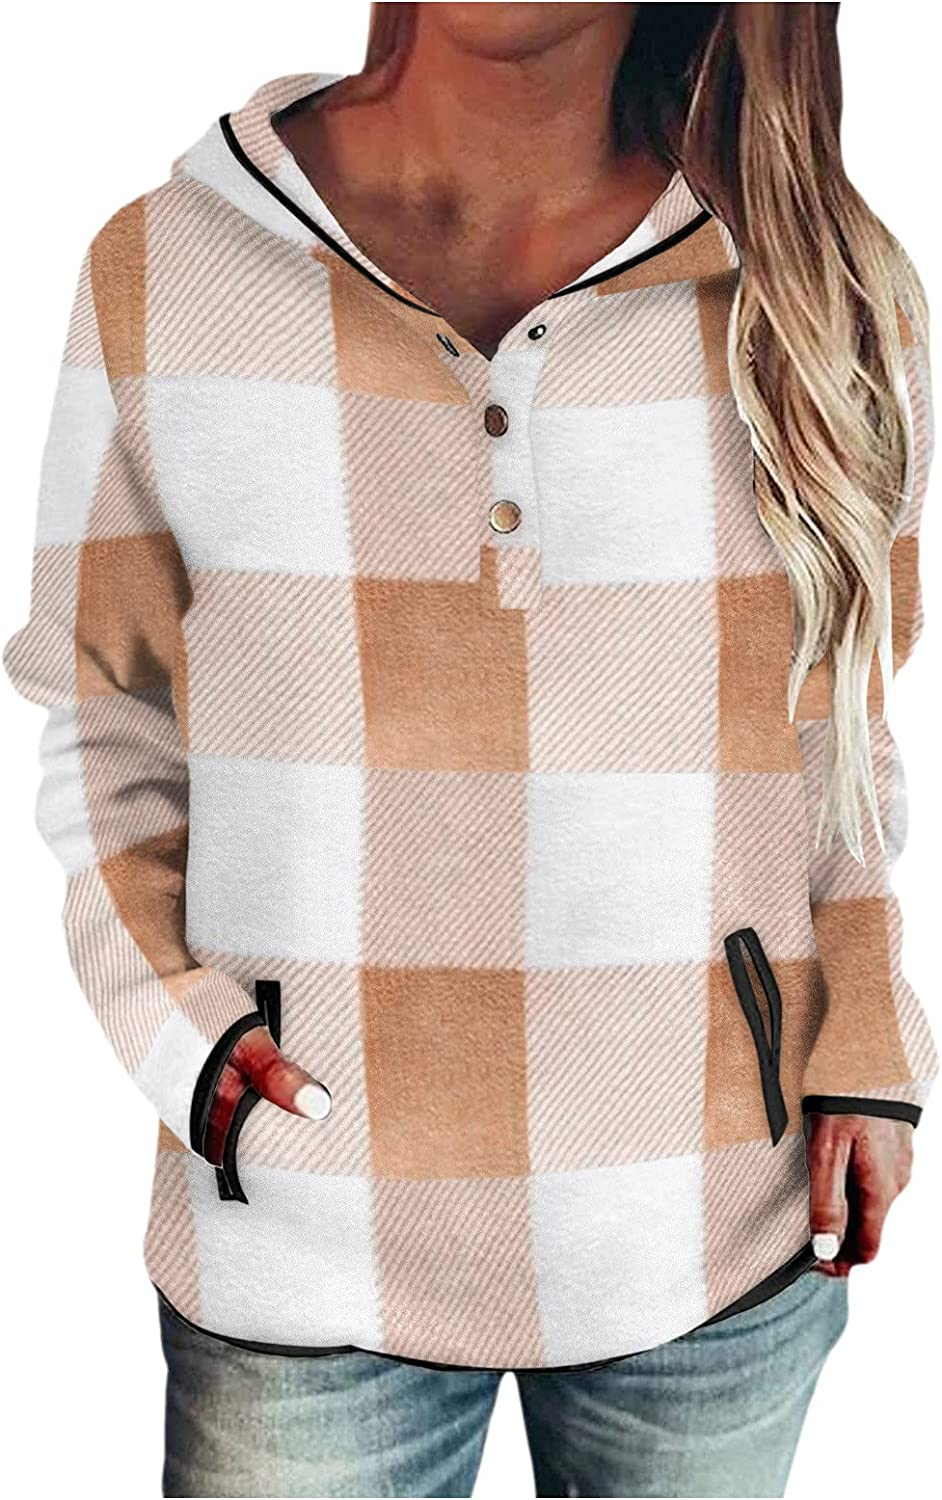 Women Tops Sweatshirt Hoodie Plaid Print Long Sleeve Buttoned V Neck Hooded Pullovers Casual Fall Blouse with Pocket